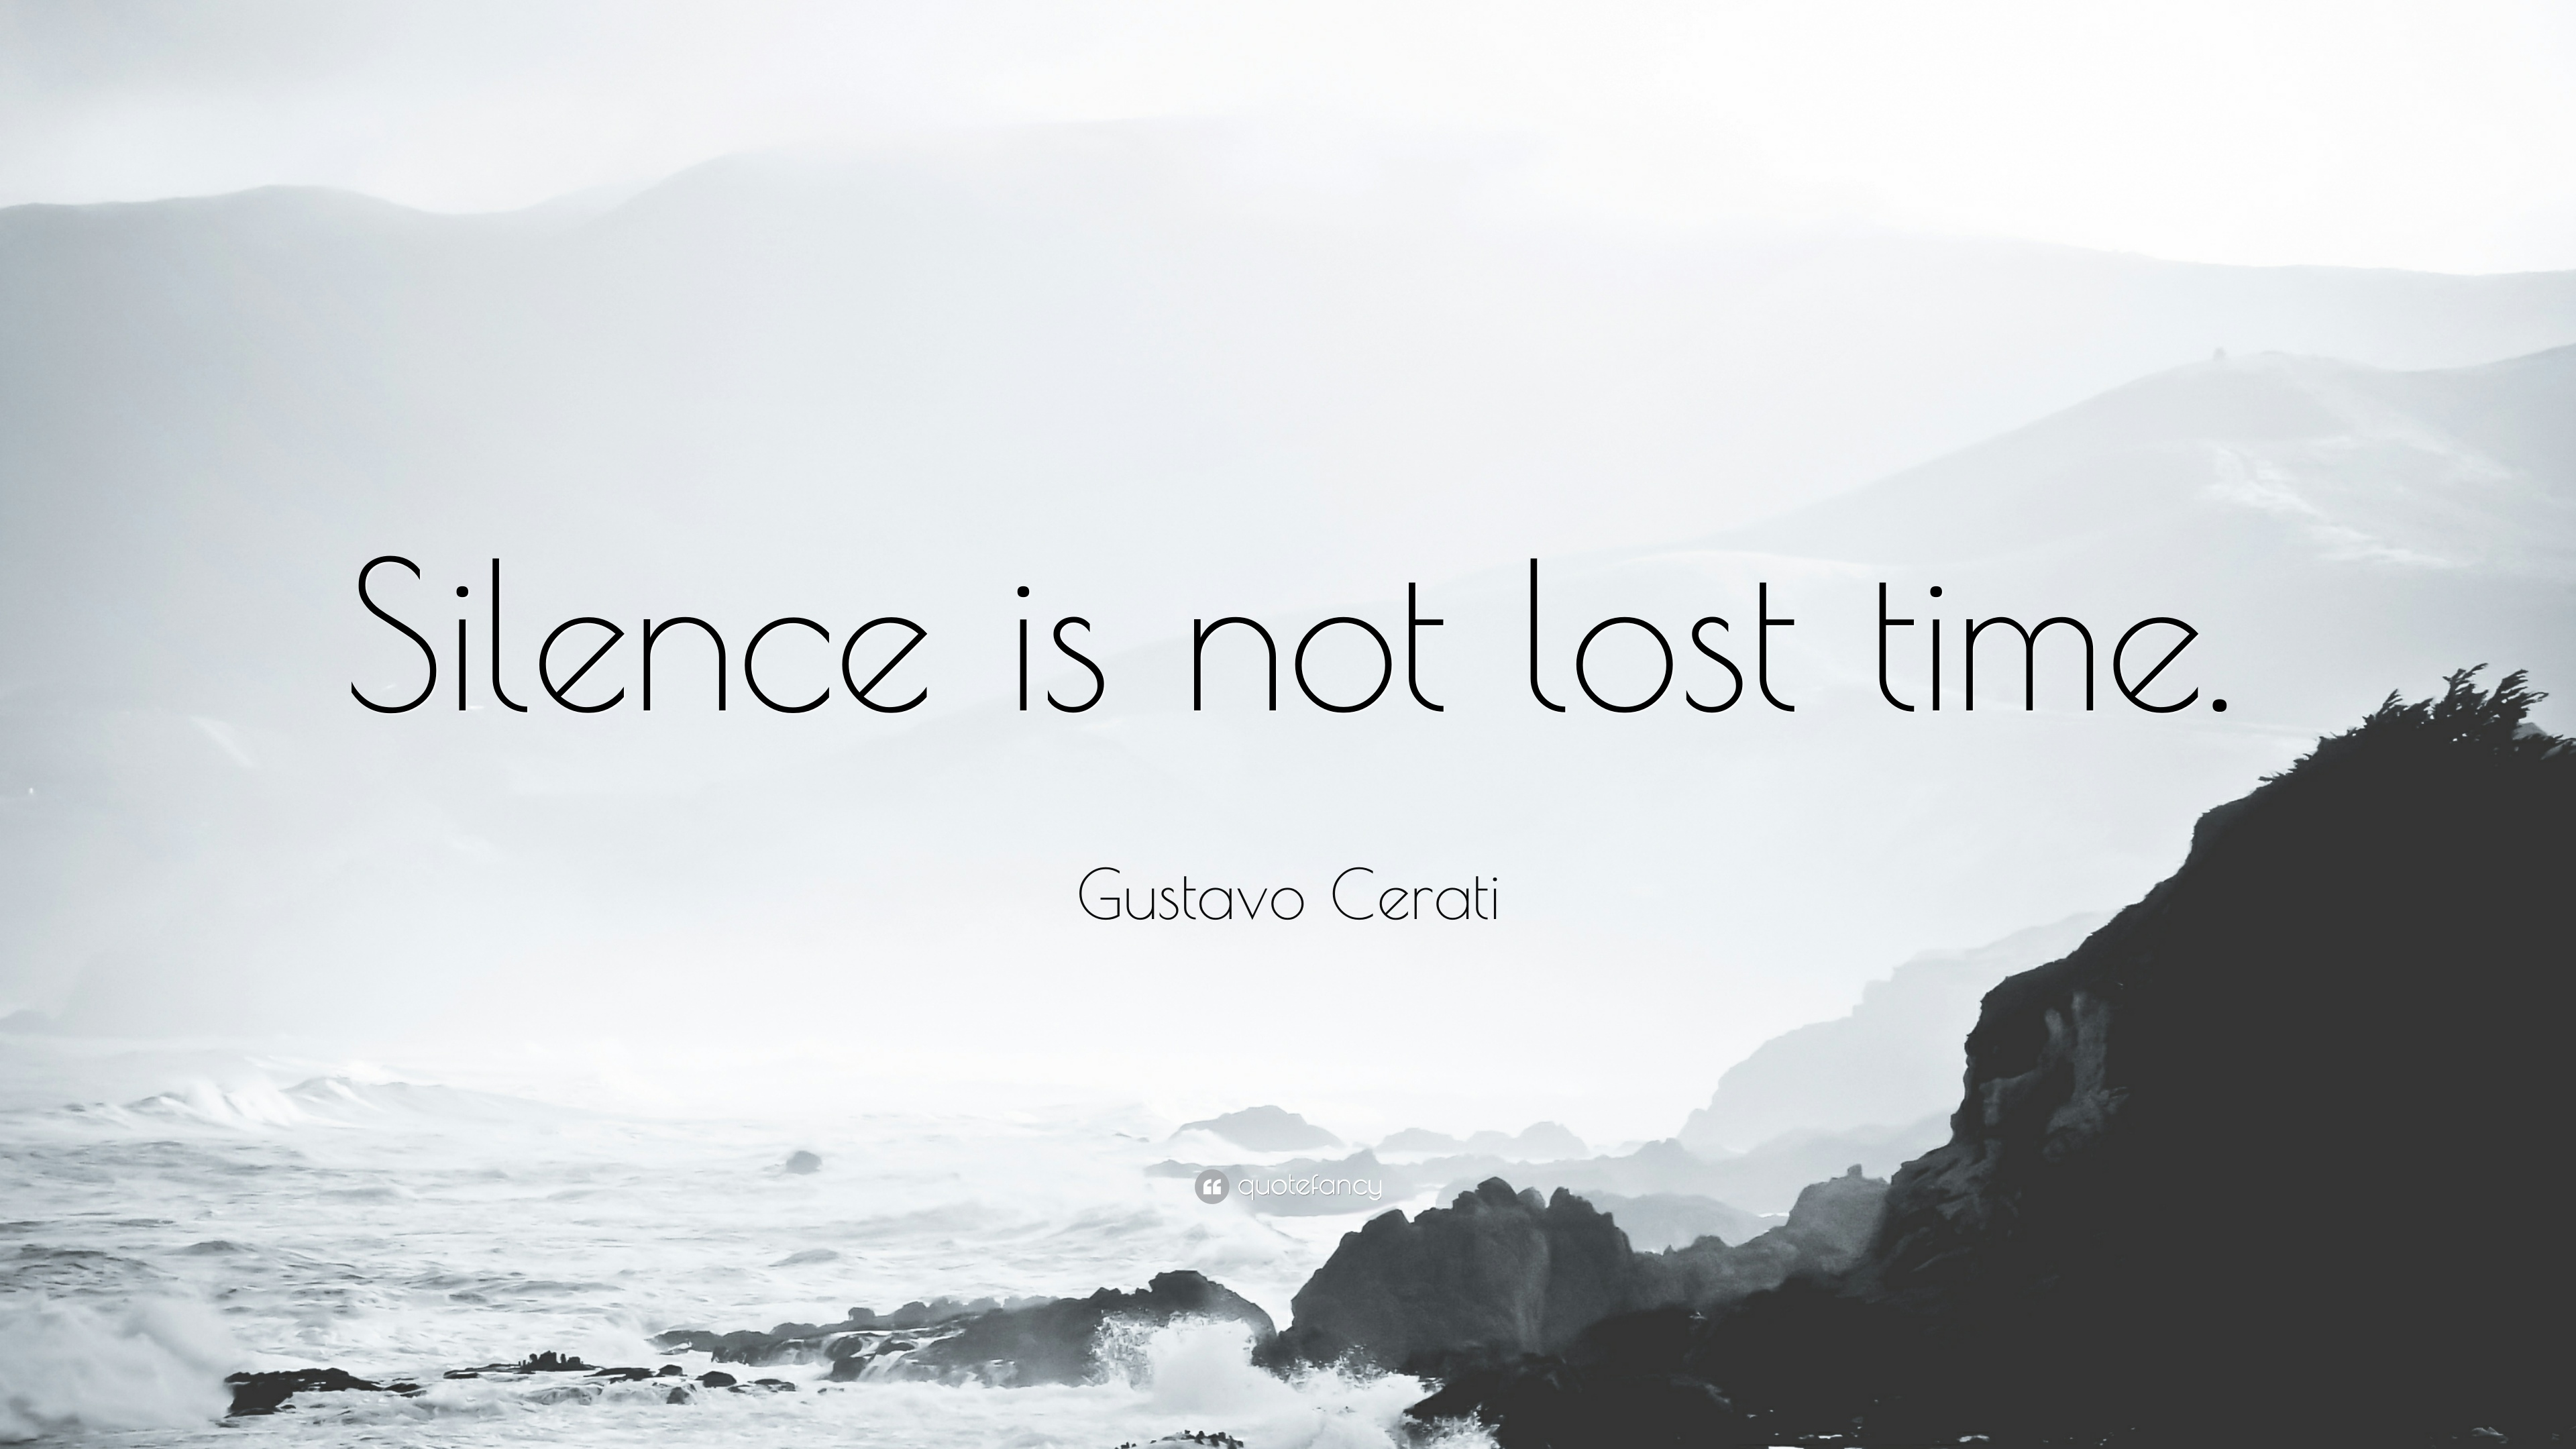 Gustavo Cerati Quote Silence Is Not Lost Time 12 Wallpapers